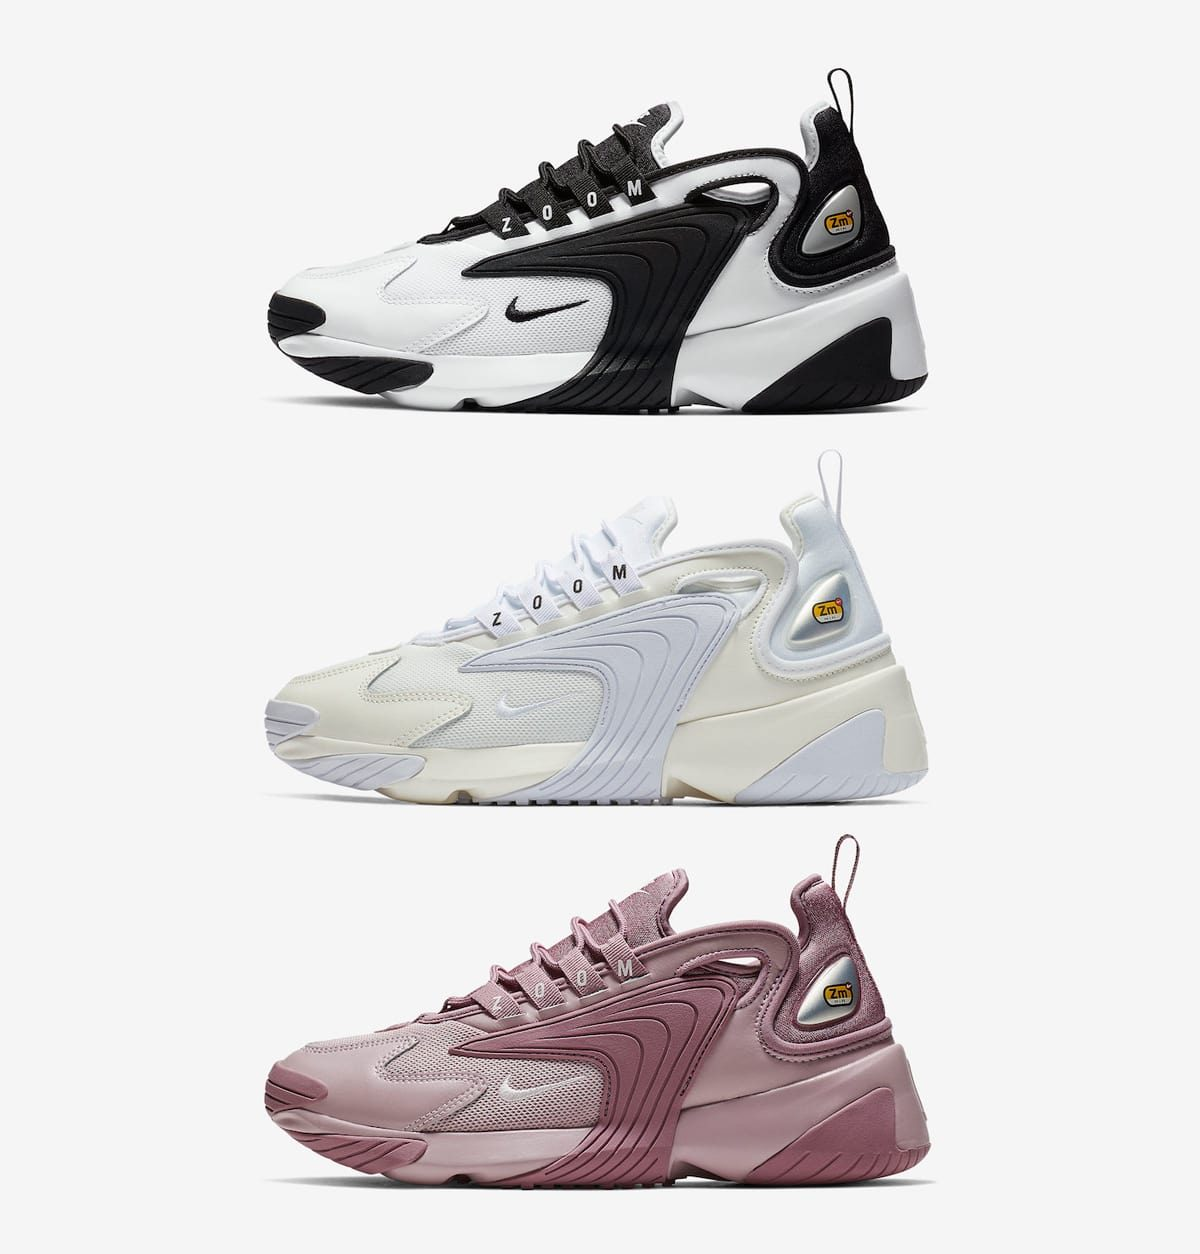 Introducing the Nike Zoom 2K